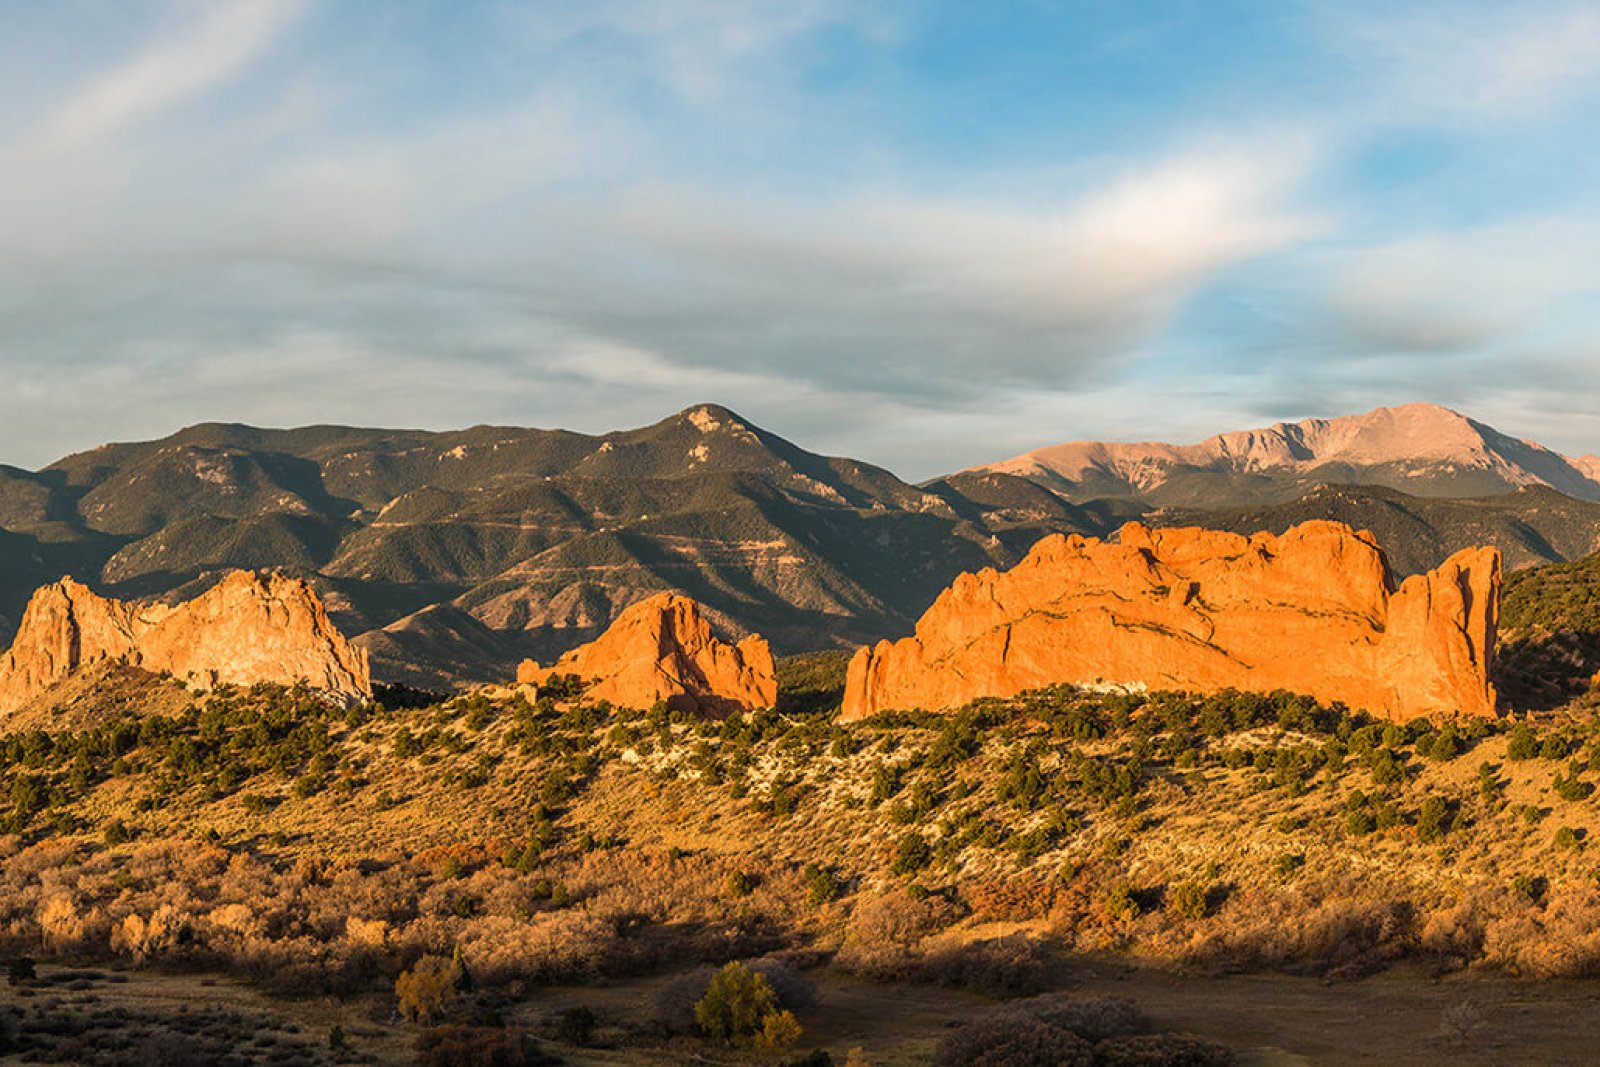 Sunrise at Garden Of The Gods in Colorado Springs, Colorado, United States